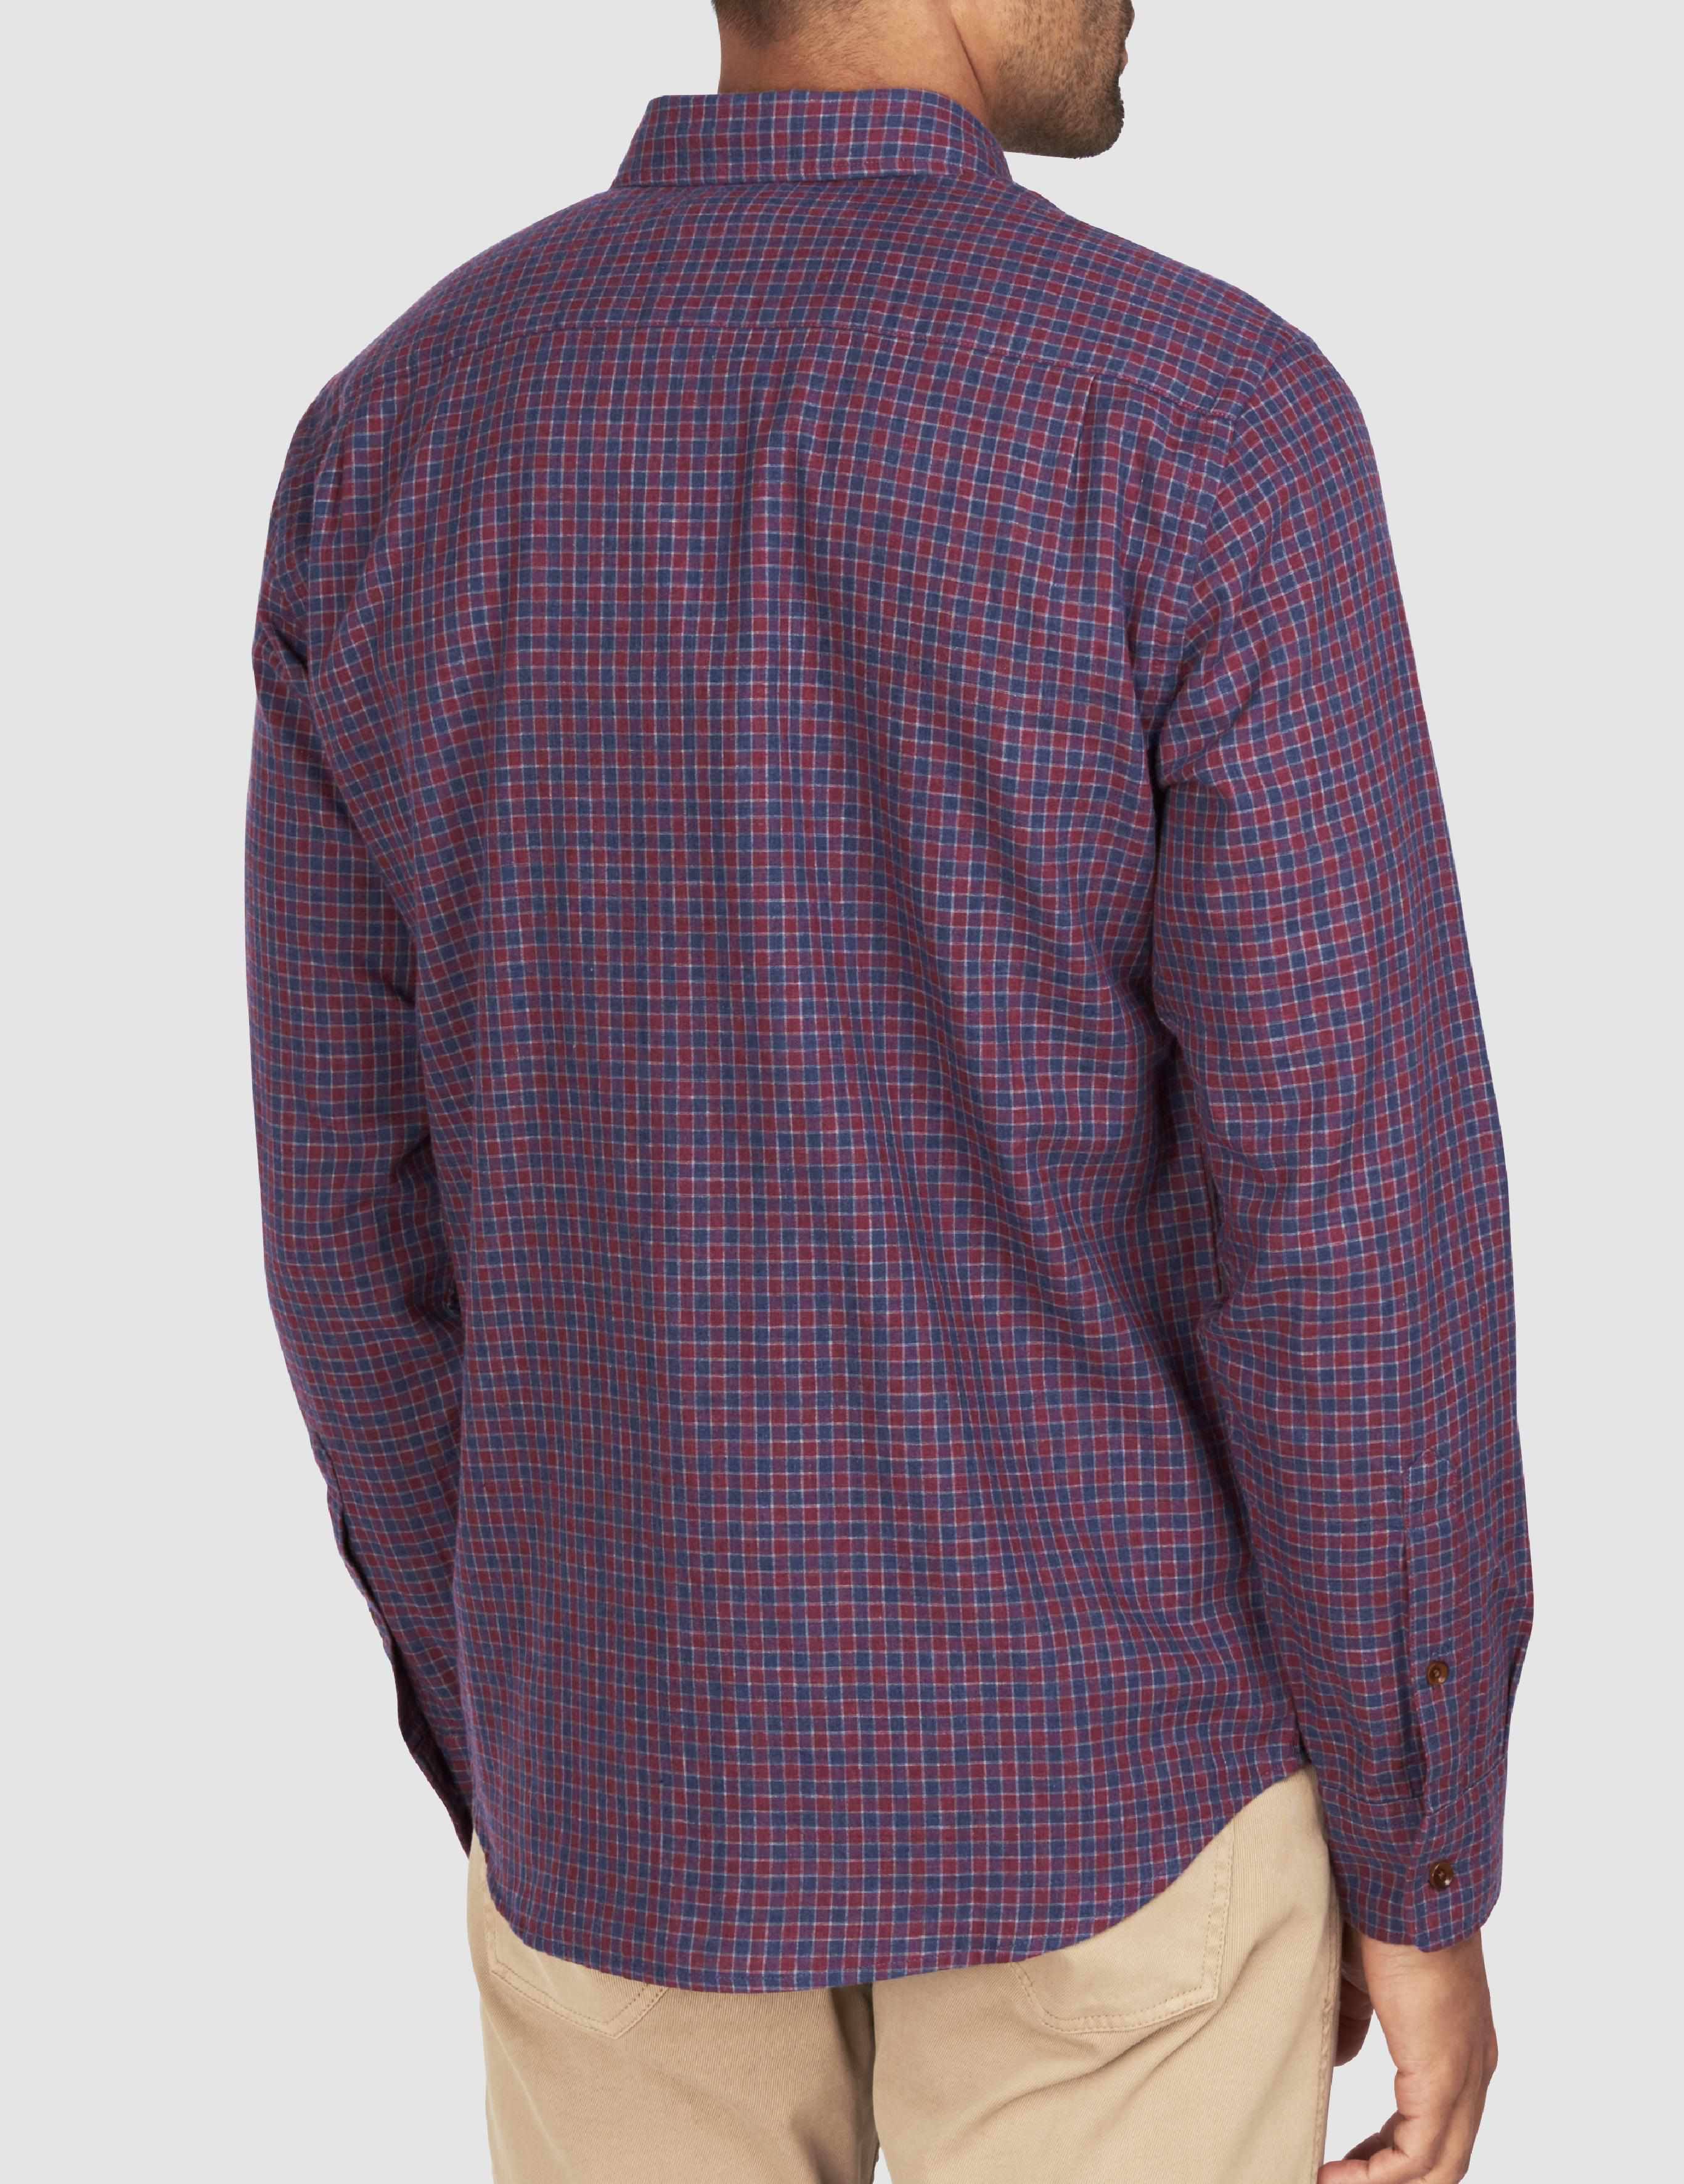 Doublecloth Shirt - Wine Shadow Check